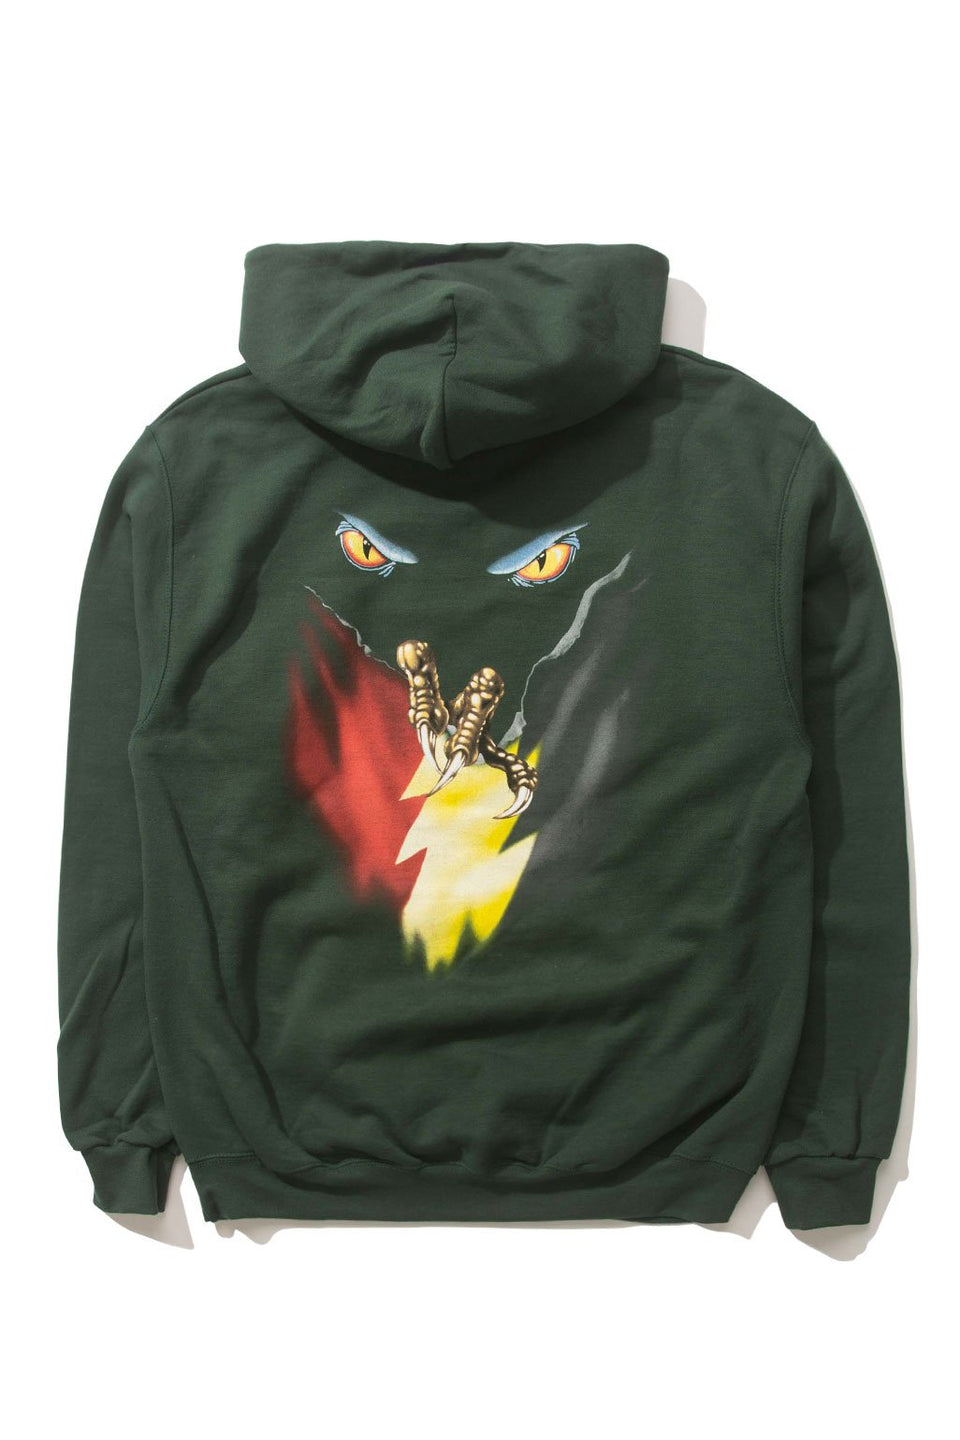 Pullover Hoodies The Hundreds